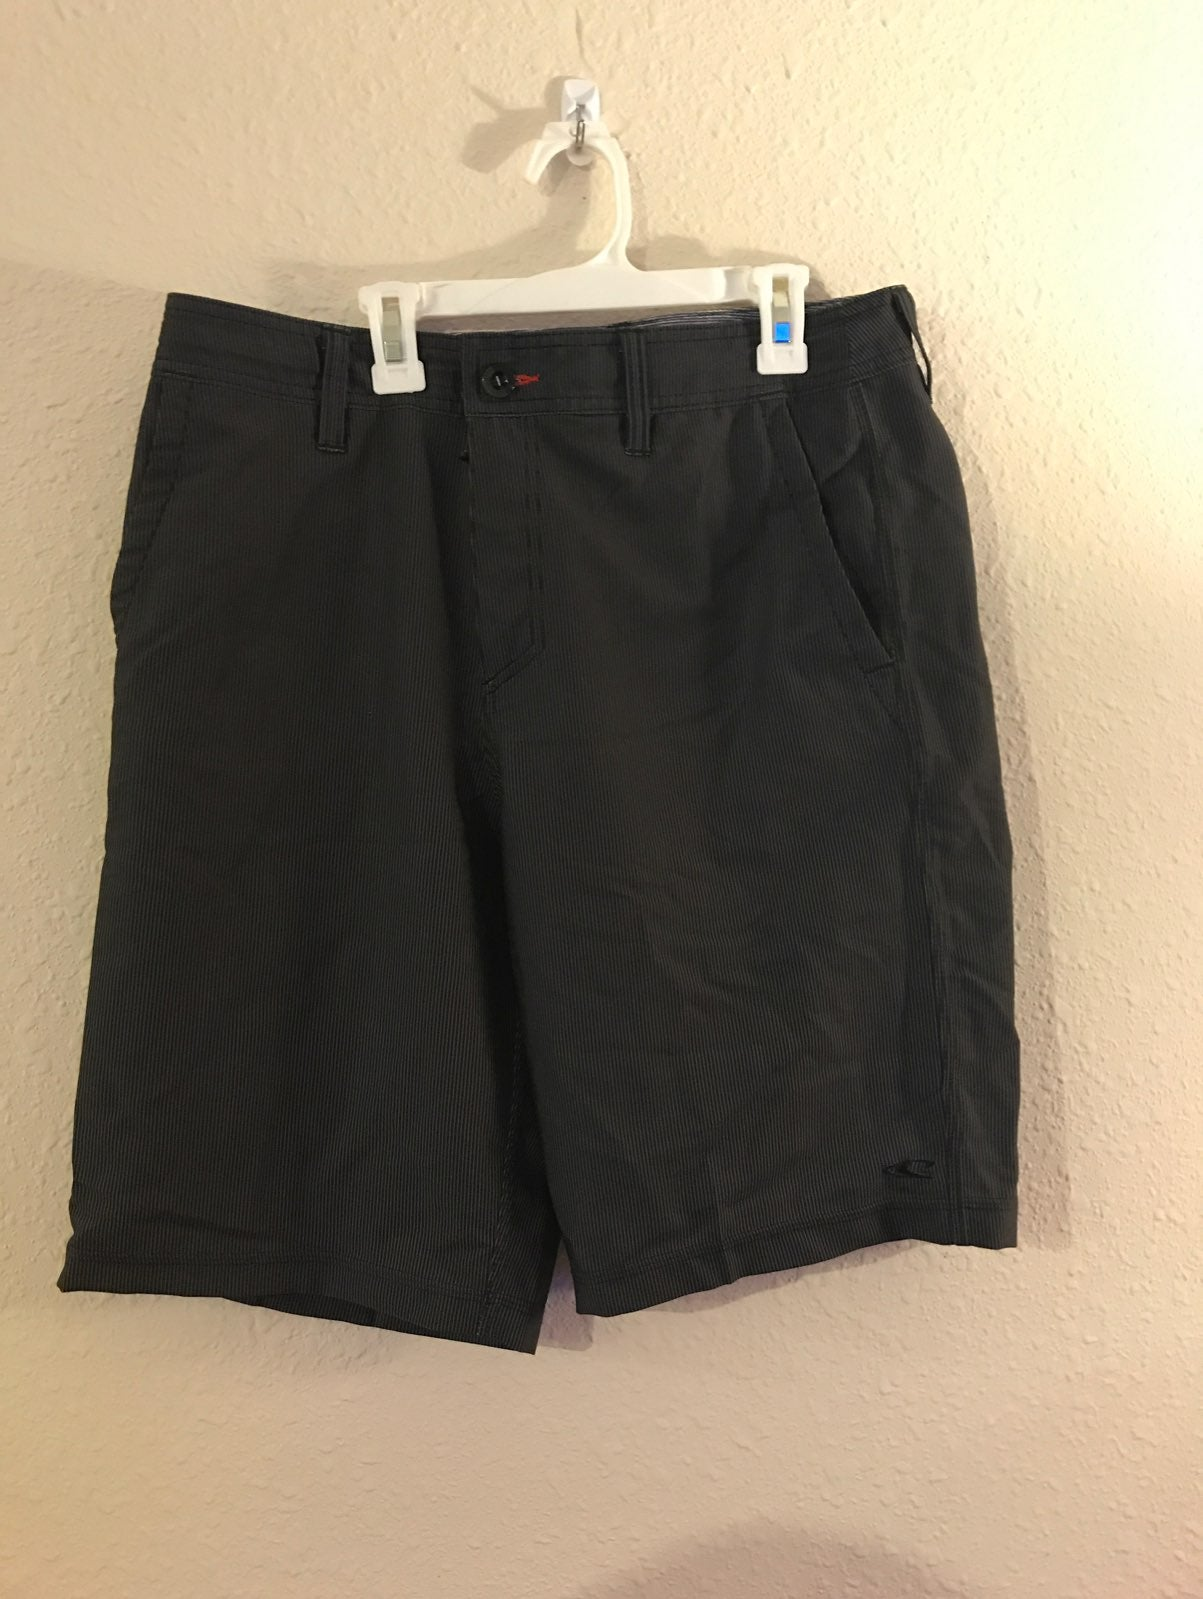 Men's O'Neill NWOT 32 Bathing Suits